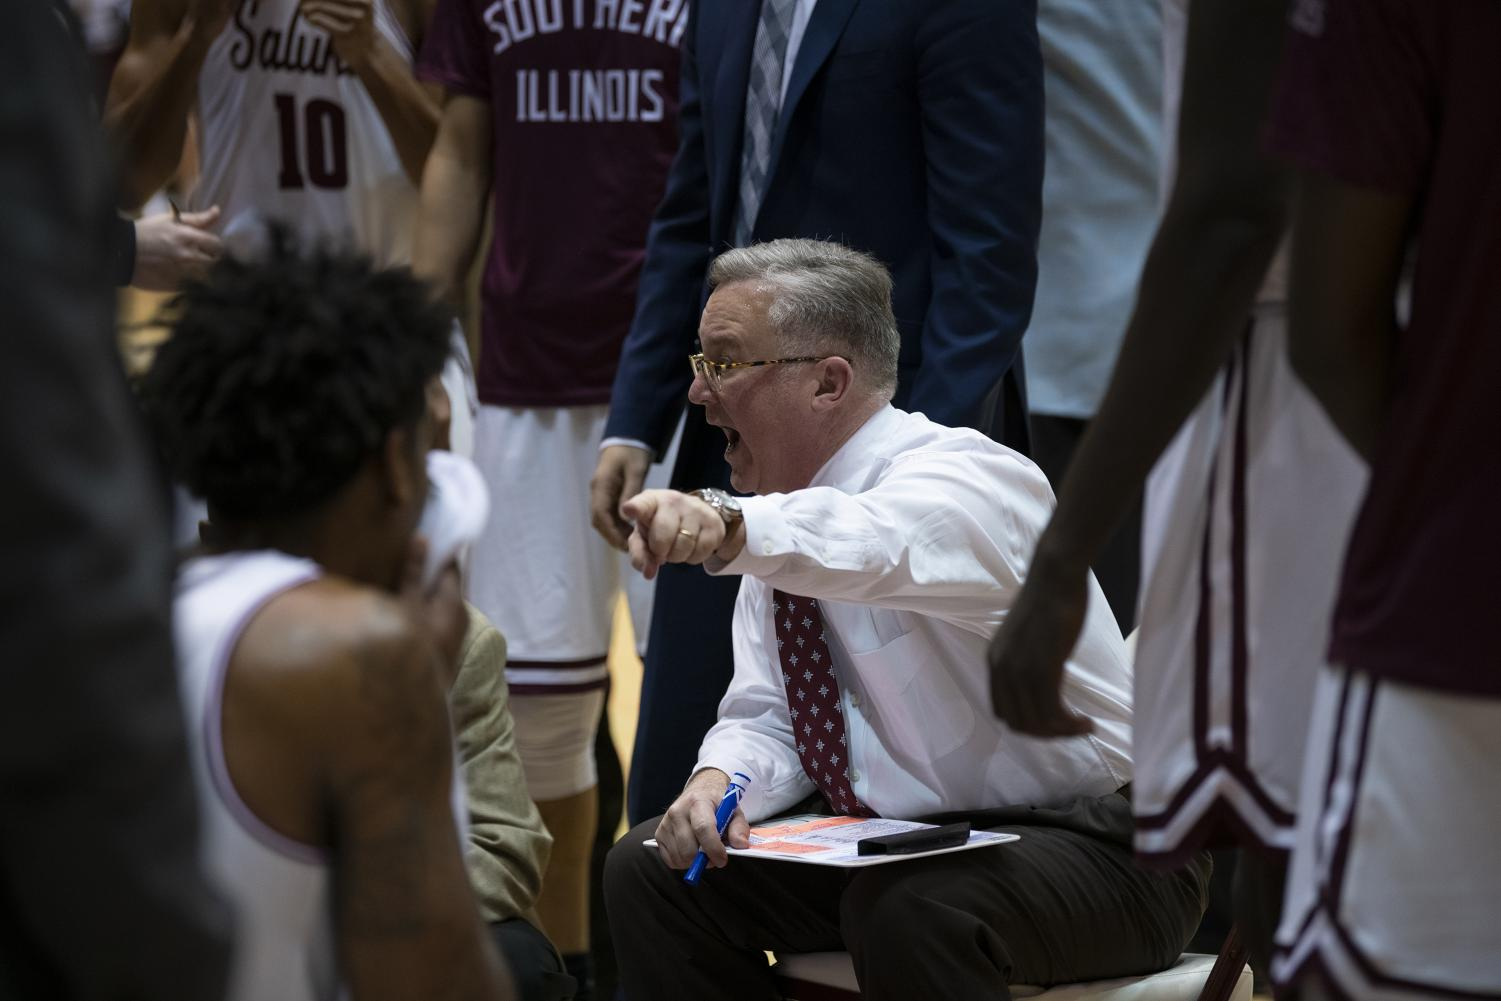 Saluki+Head+Coach+Barry+Hinson+addresses+the+team+during+a+time+out+on+Tuesday%2C+Feb.+12%2C+2019%2C+during+the+Saluki%E2%80%99s+72-69+loss+against+the+Drake+Bulldogs+at+the+SIU+Arena.+